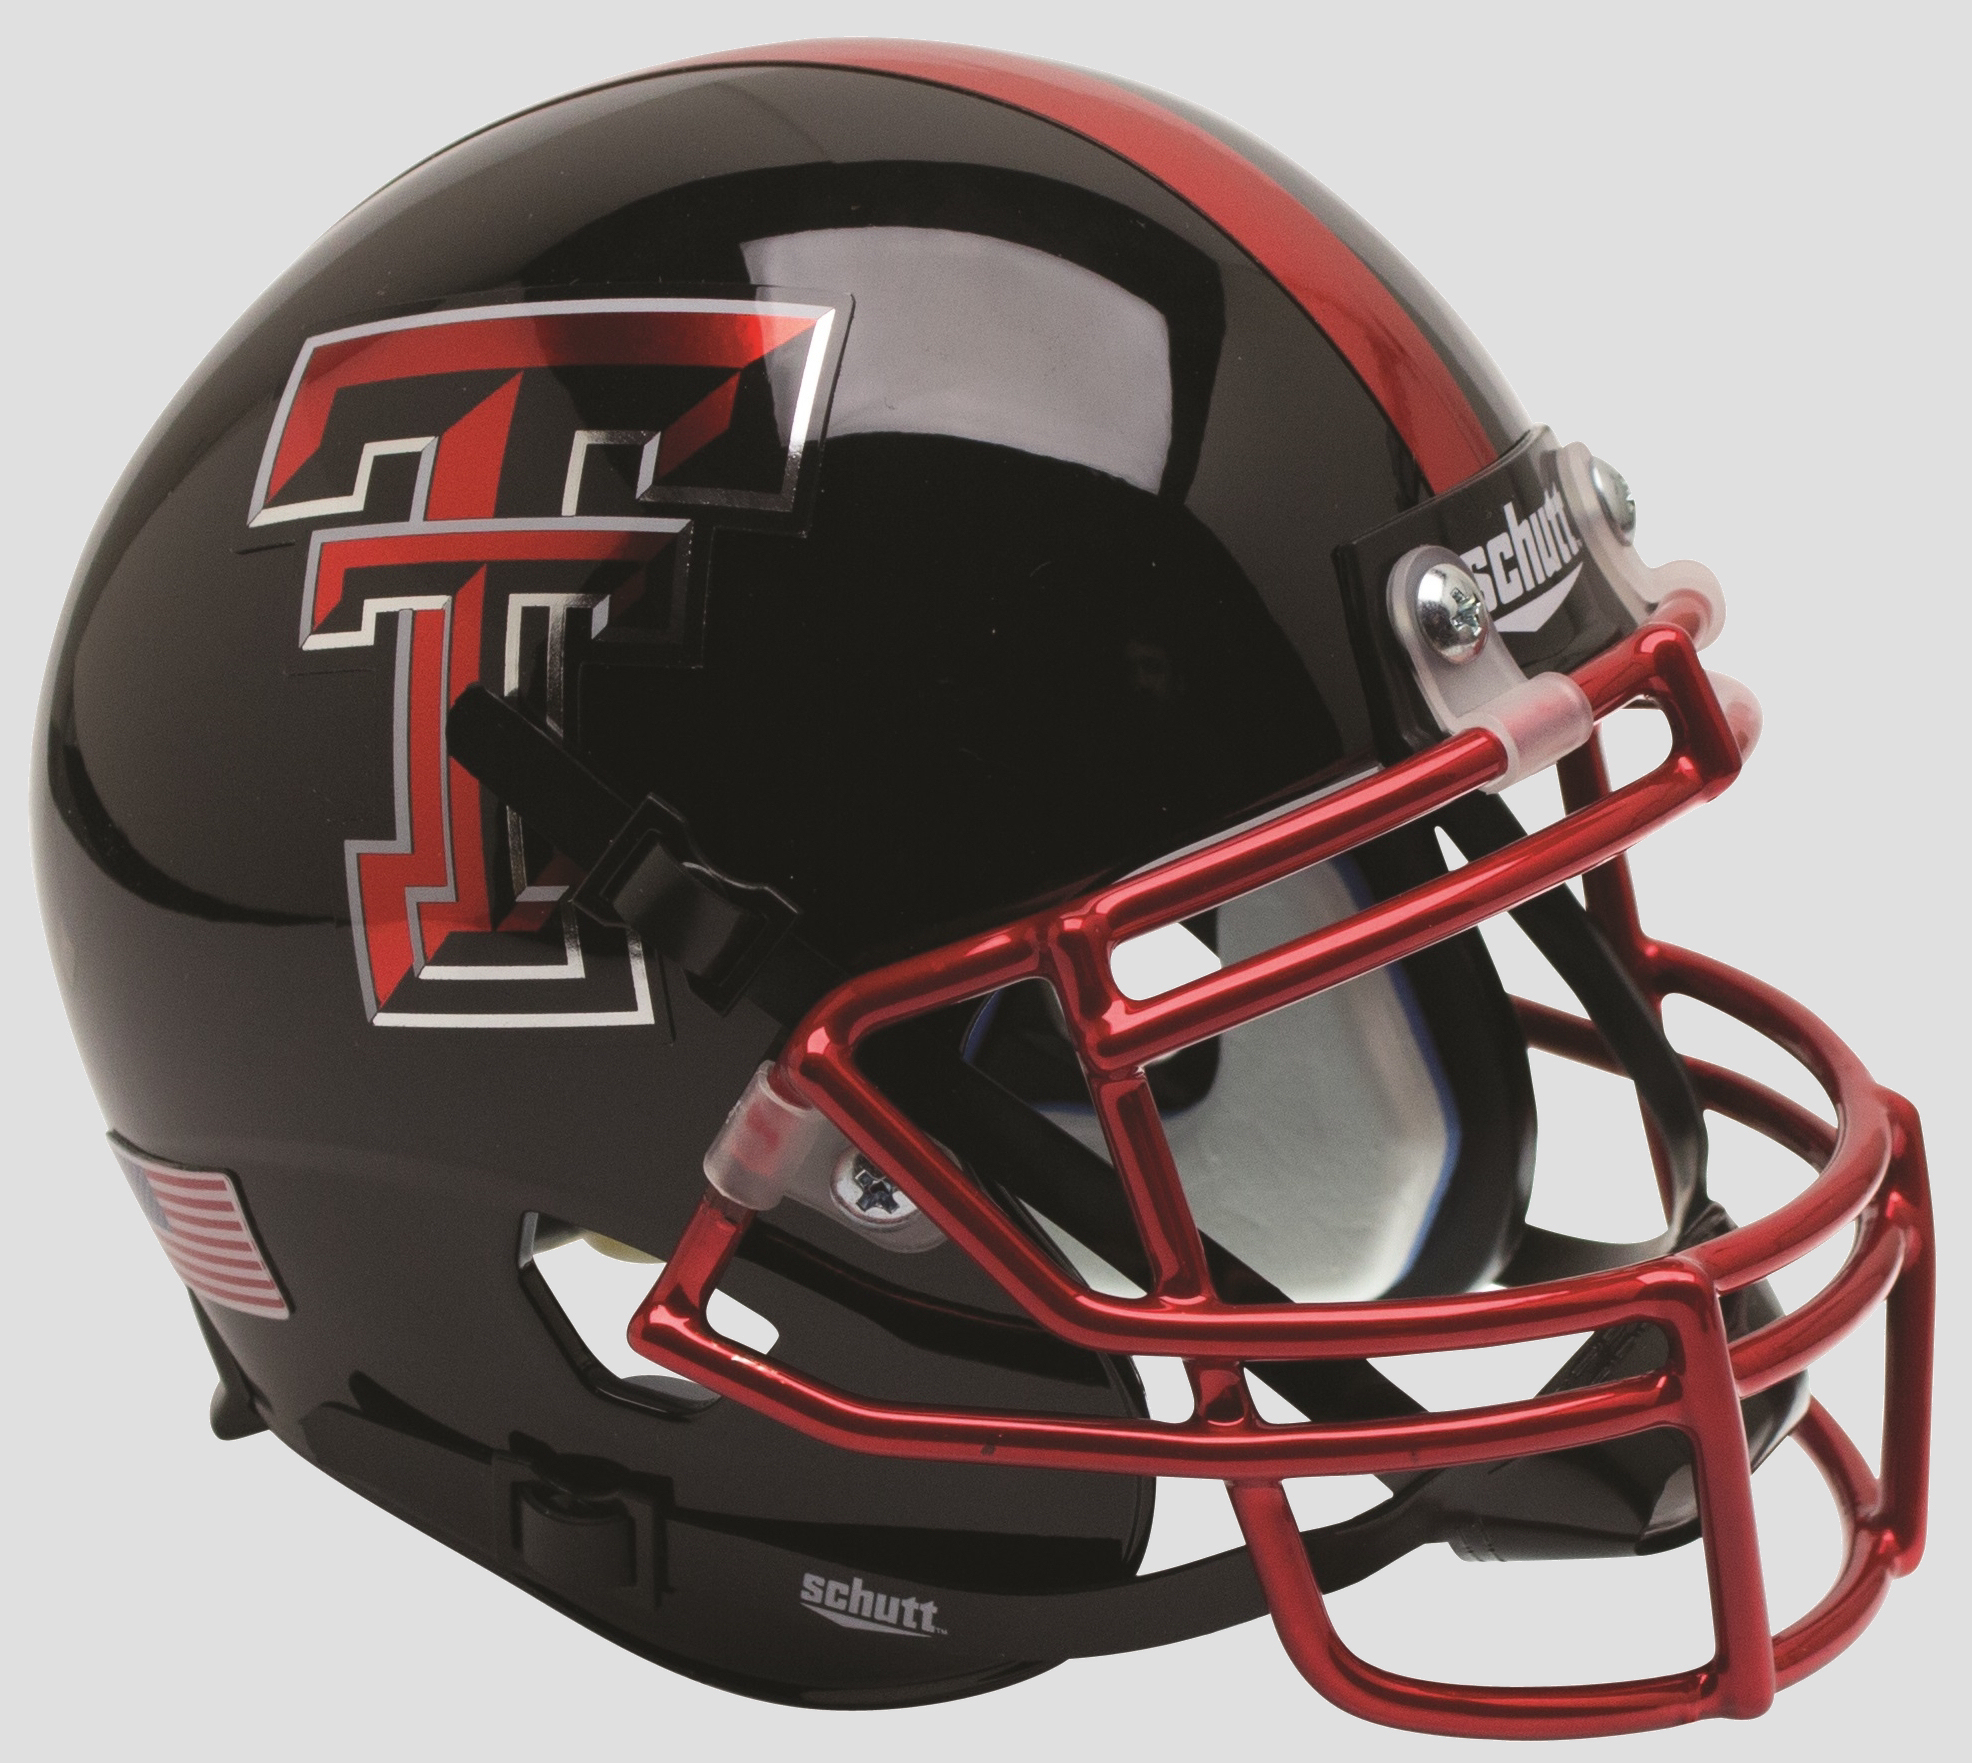 Texas Tech Red Raiders Miniature Football Helmet Desk Caddy <B>Chrome Mask Guns Up</B>